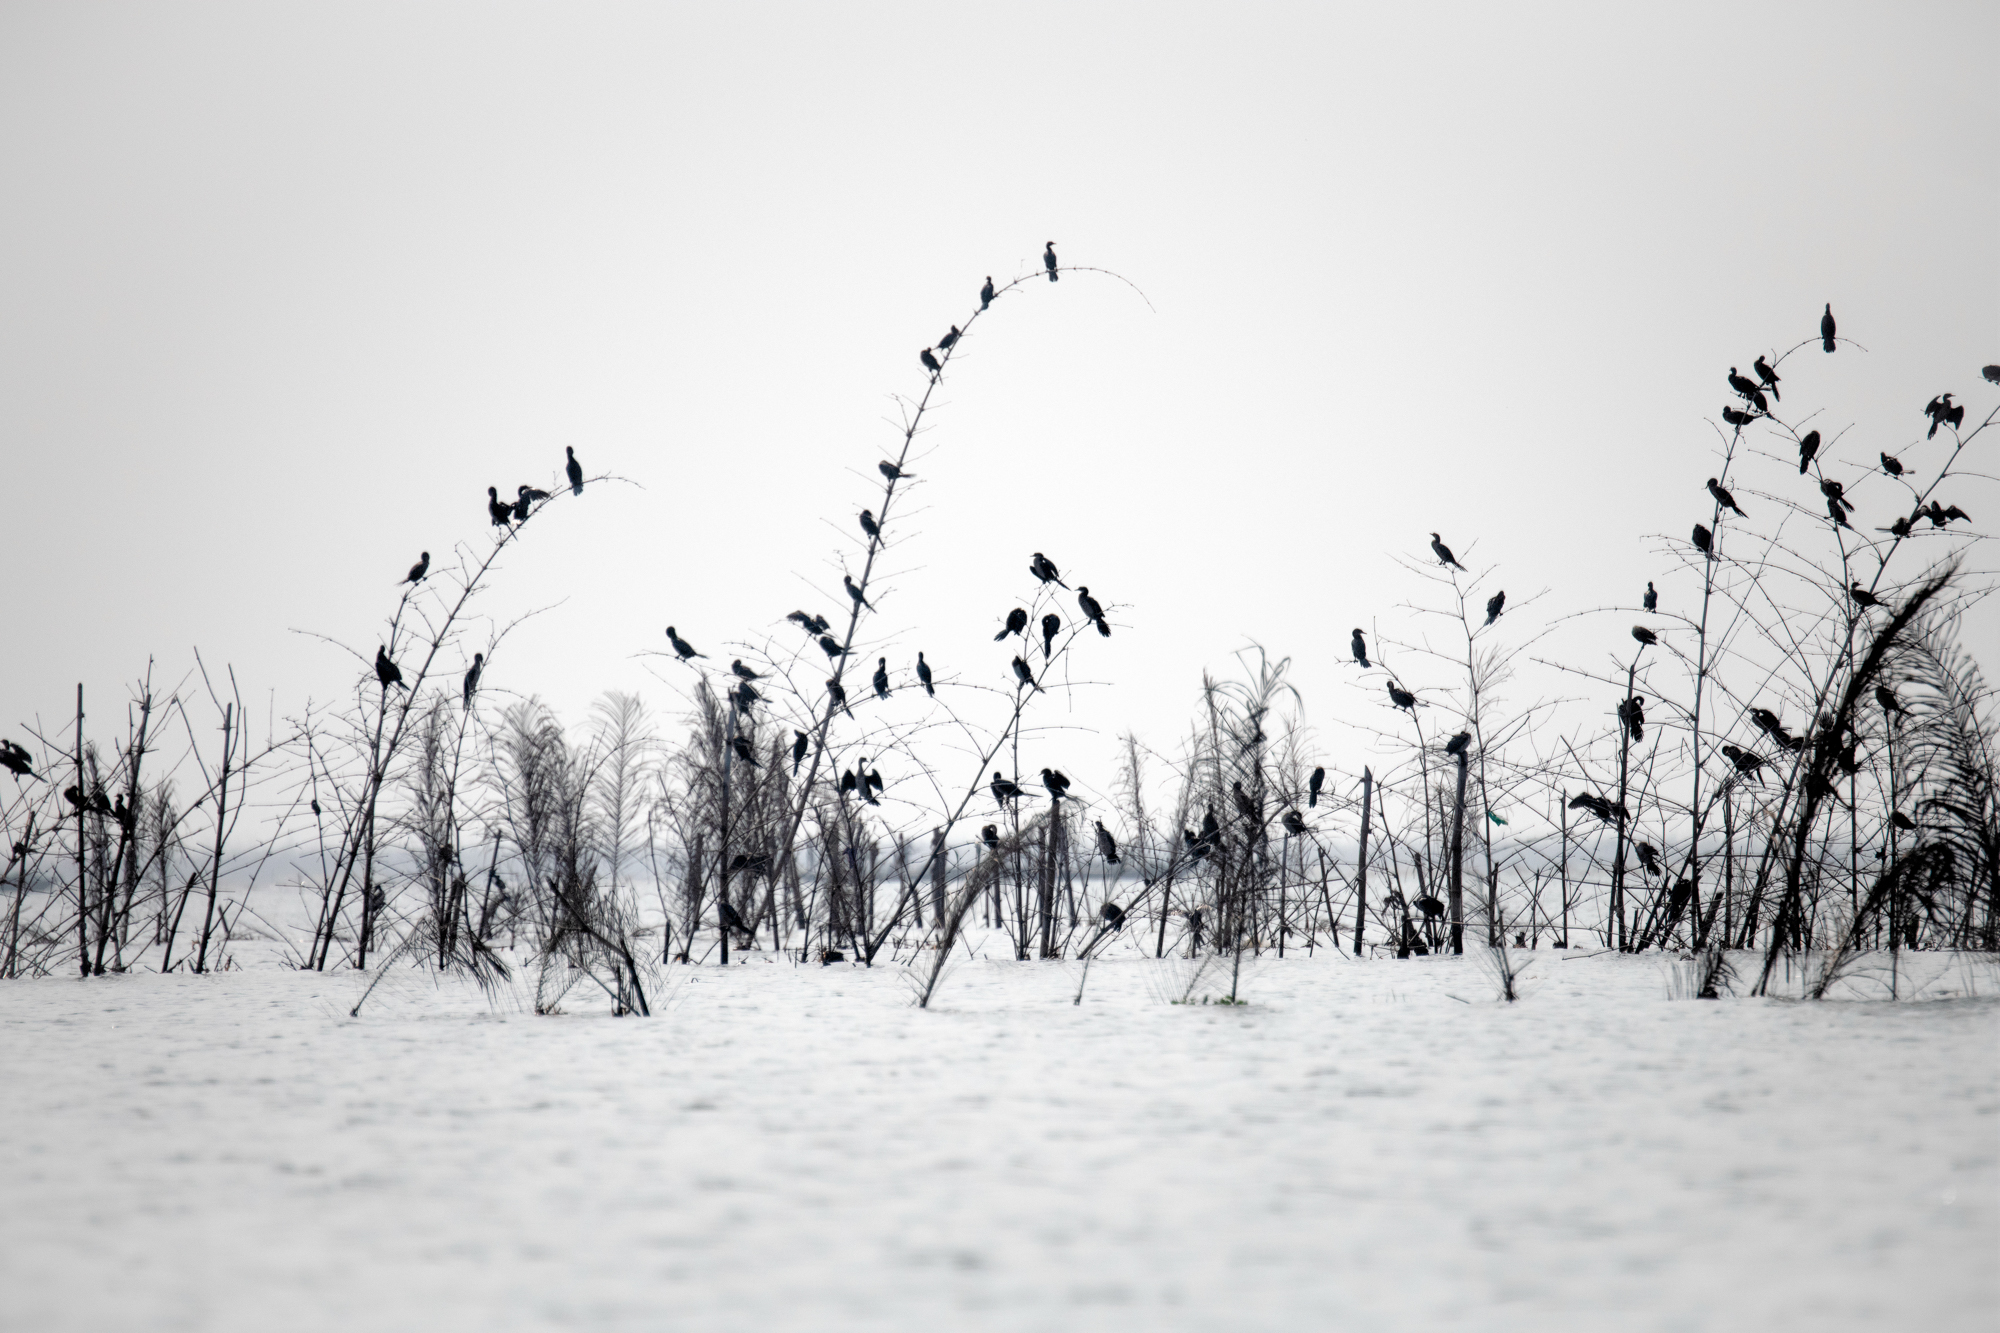 Water Birds, near Cotonou, Benin